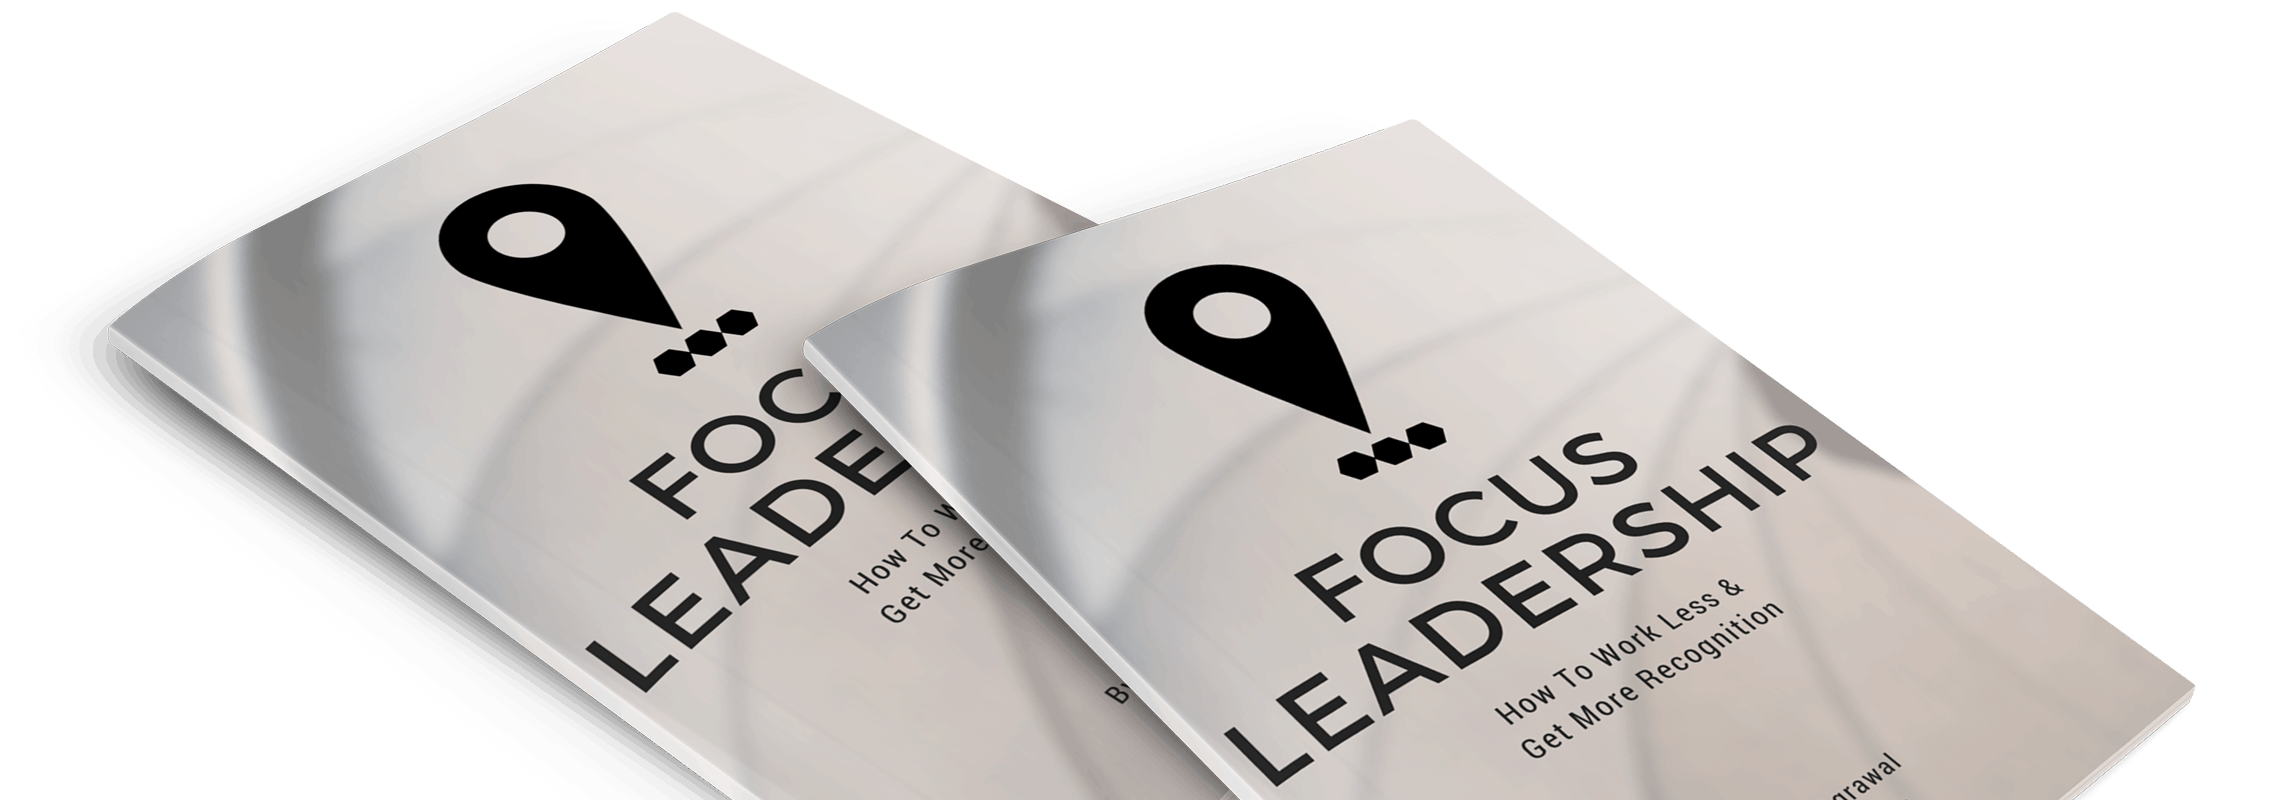 focus on leadership coaching Executive coaching programs focus on helping you learn to lead in a way that is  natural to you - because you have your own unique blend of leadership skills.